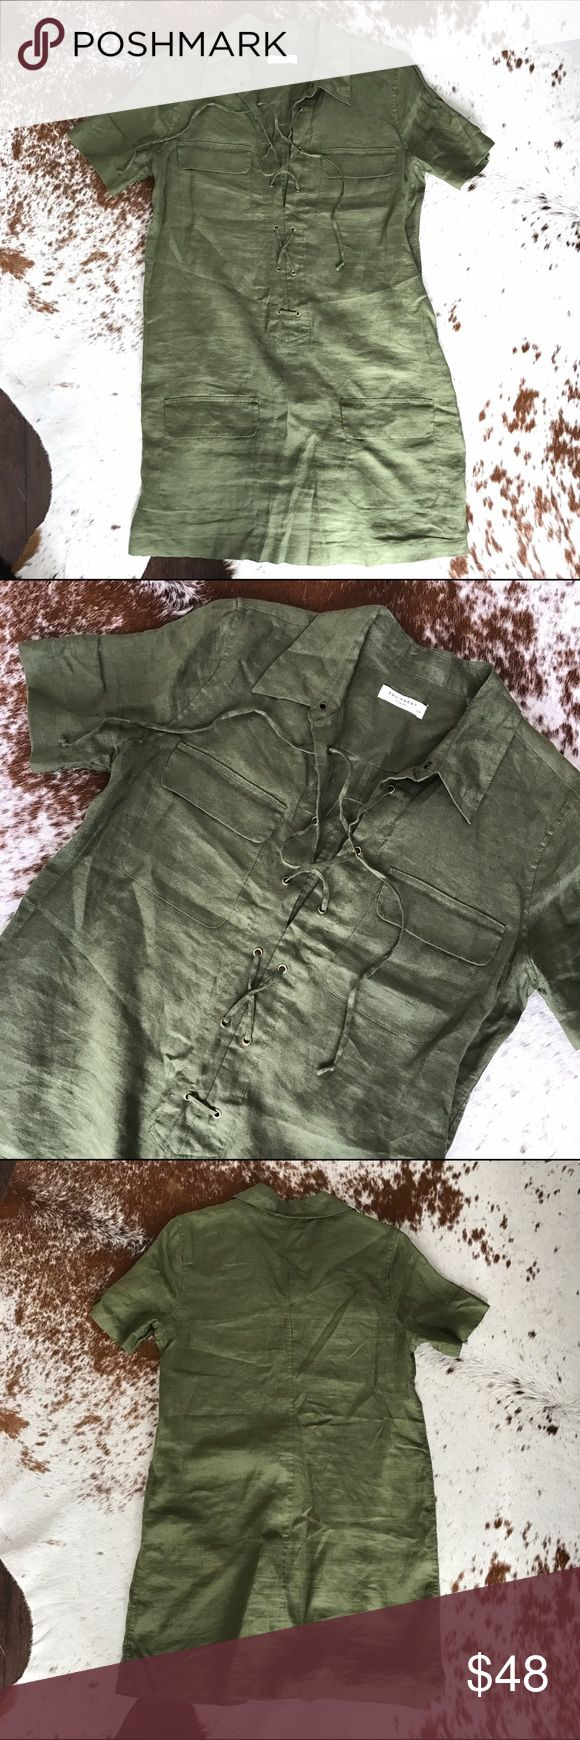 "Equipment Knox lace up linen dress Adorable lace up dress by Equipment. Olive green color with front pockets. Worn twice. Point collar. Front lace-up placket. Short sleeves. Four front flap pockets. Pullover style. About 19"" from natural waist. Linen. Equipment Dresses Mini"